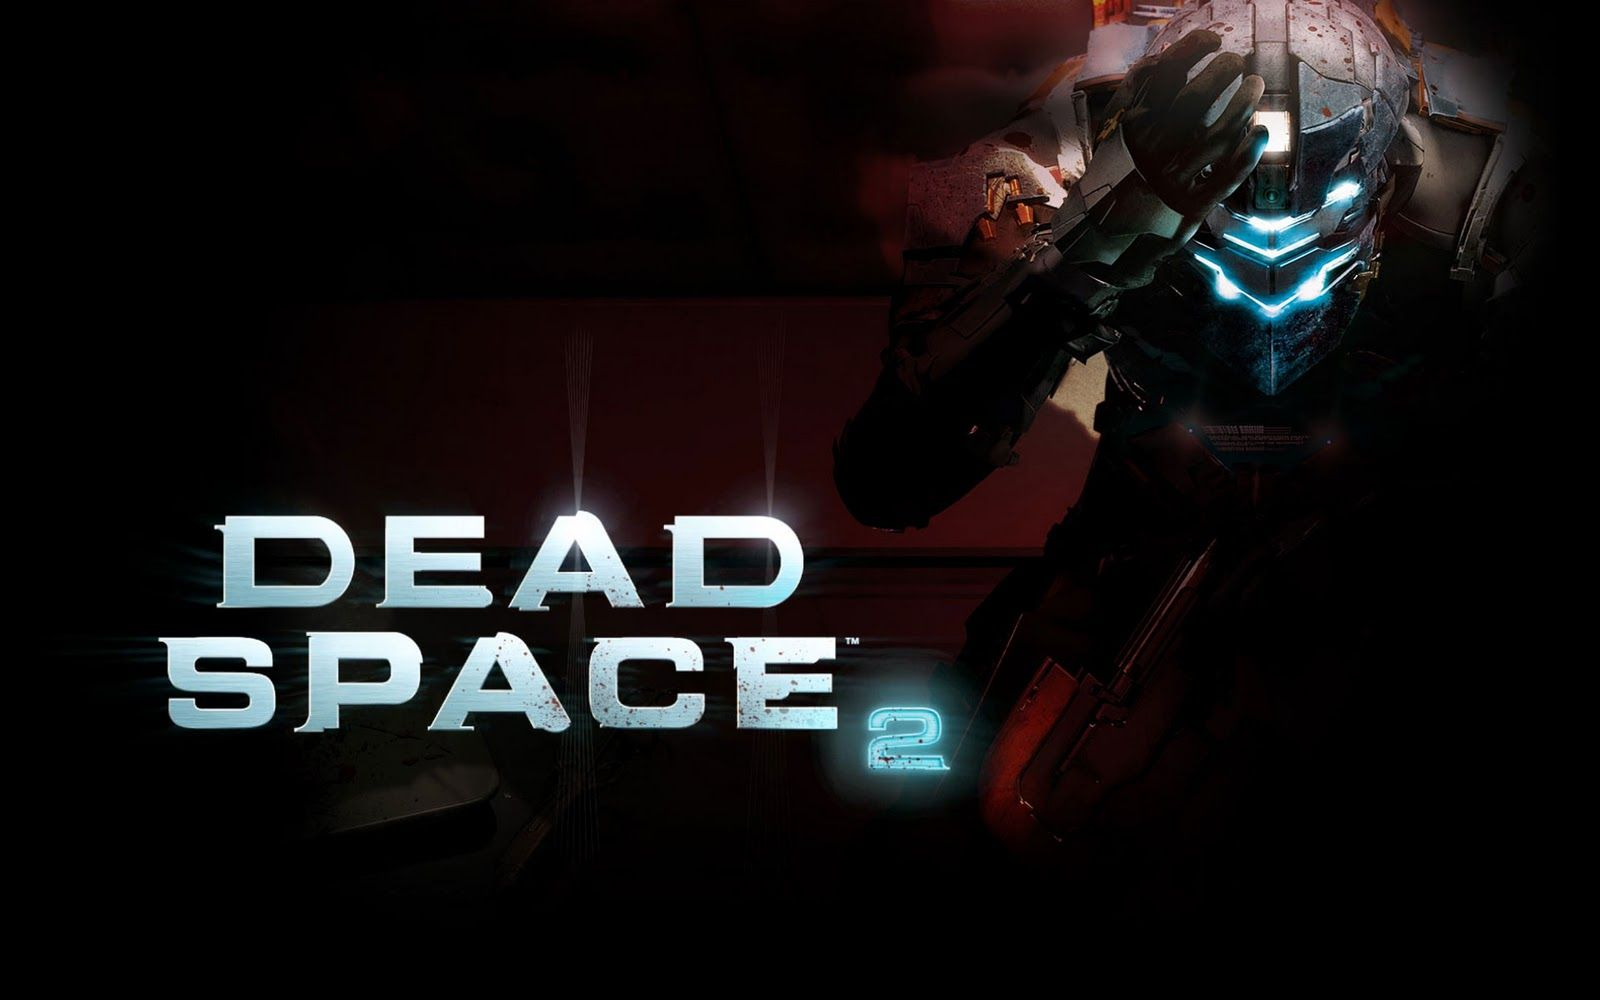 Best Dead Space 2 Wallpaper HD Wallpaper Games Wallpapers 1600x1000